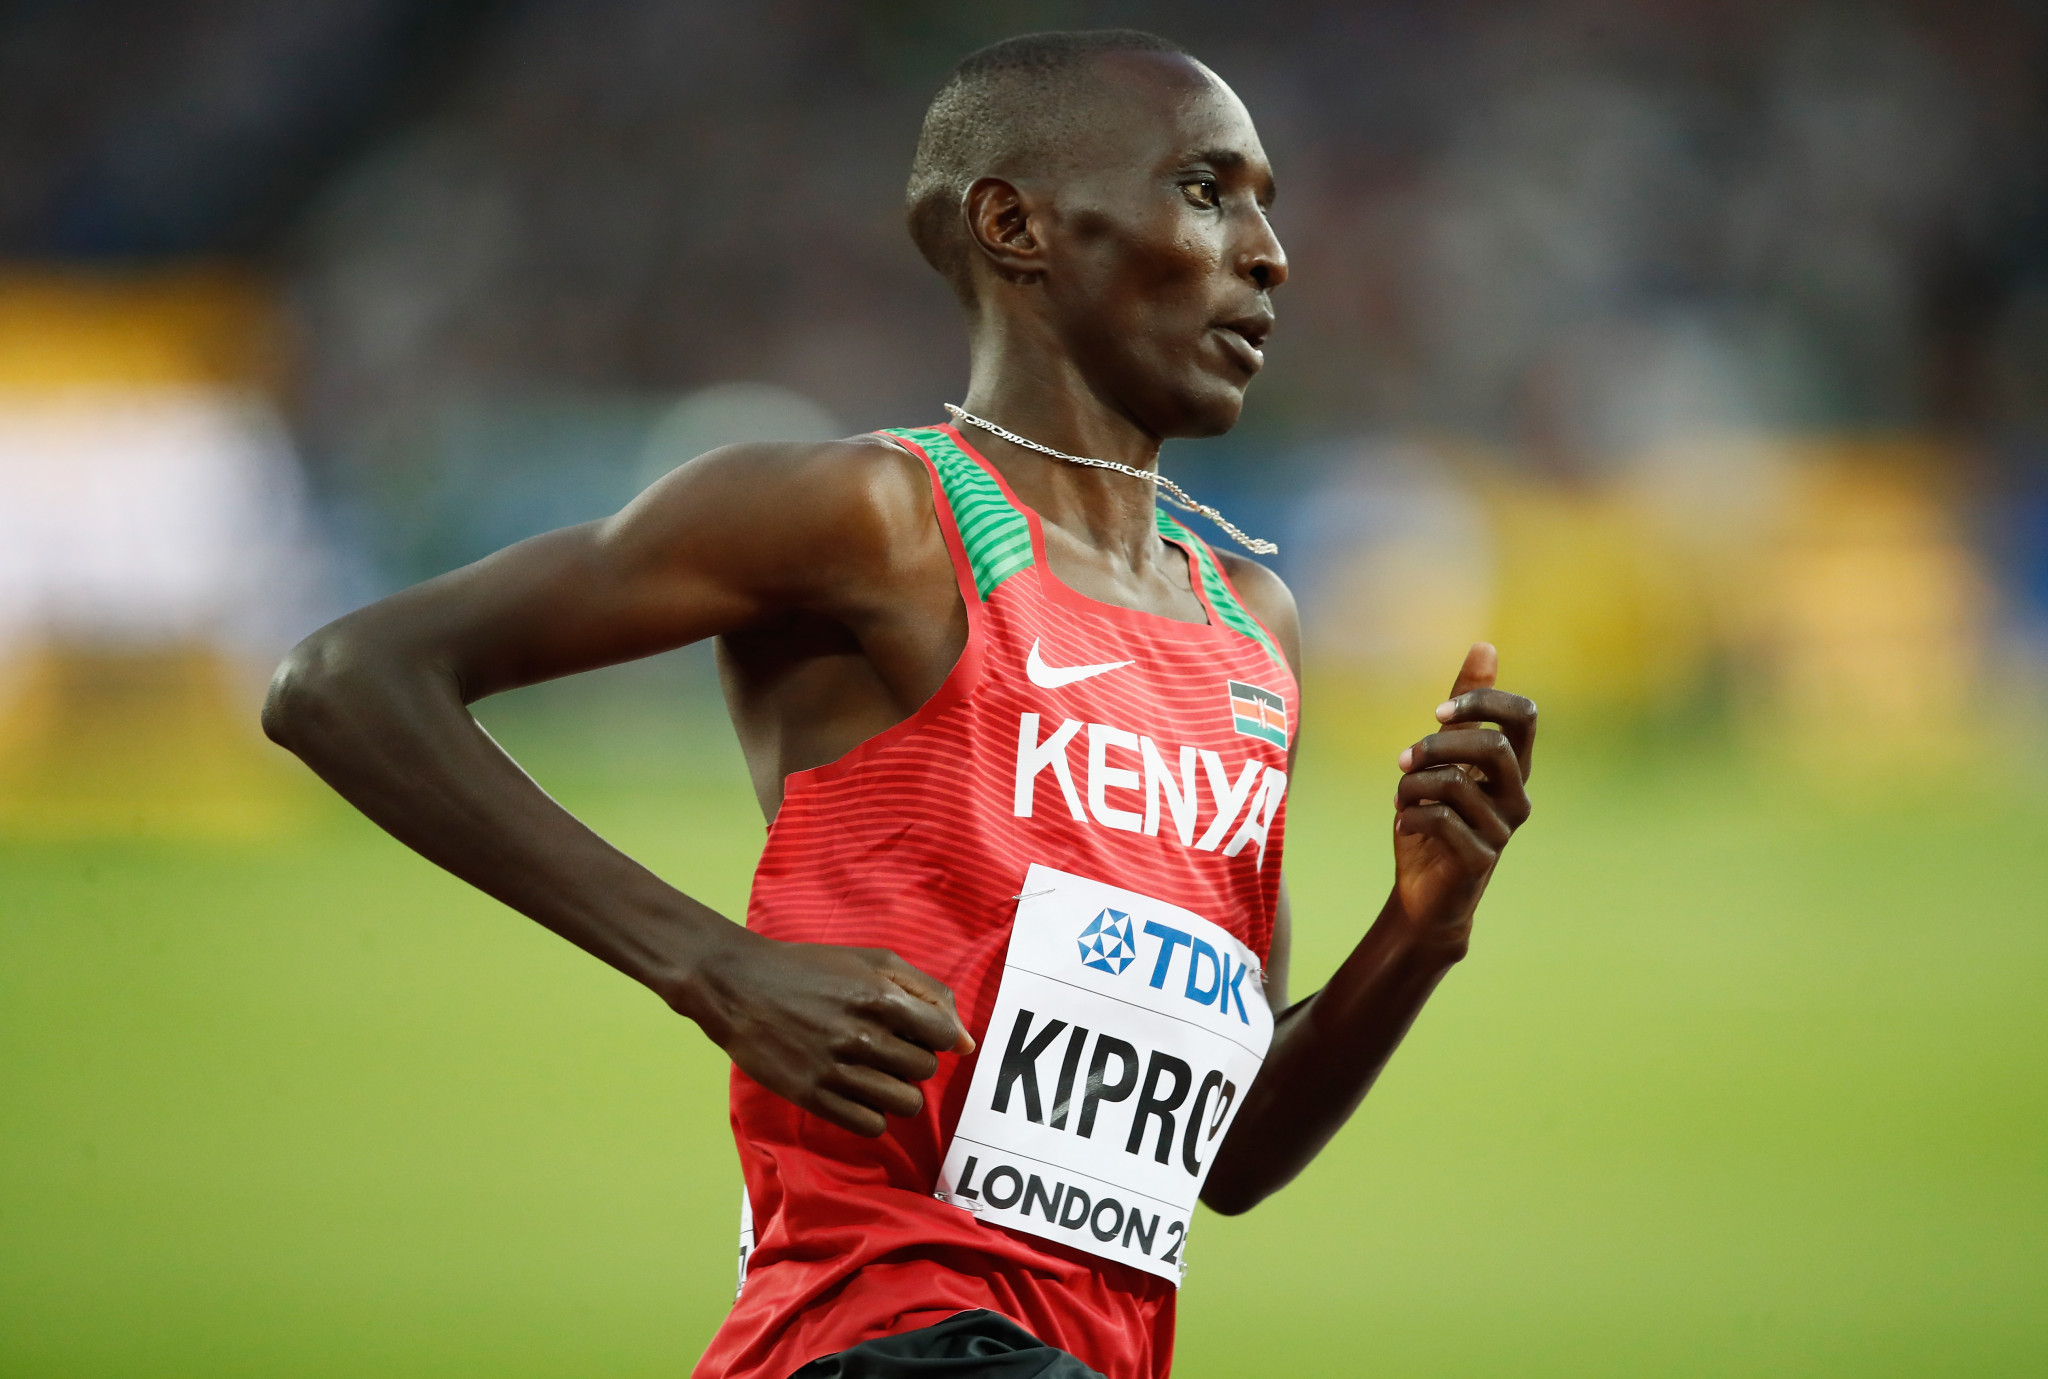 Asbel Kiprop has alleged extortion and denies taking performance enhancing drugs ©Getty Images